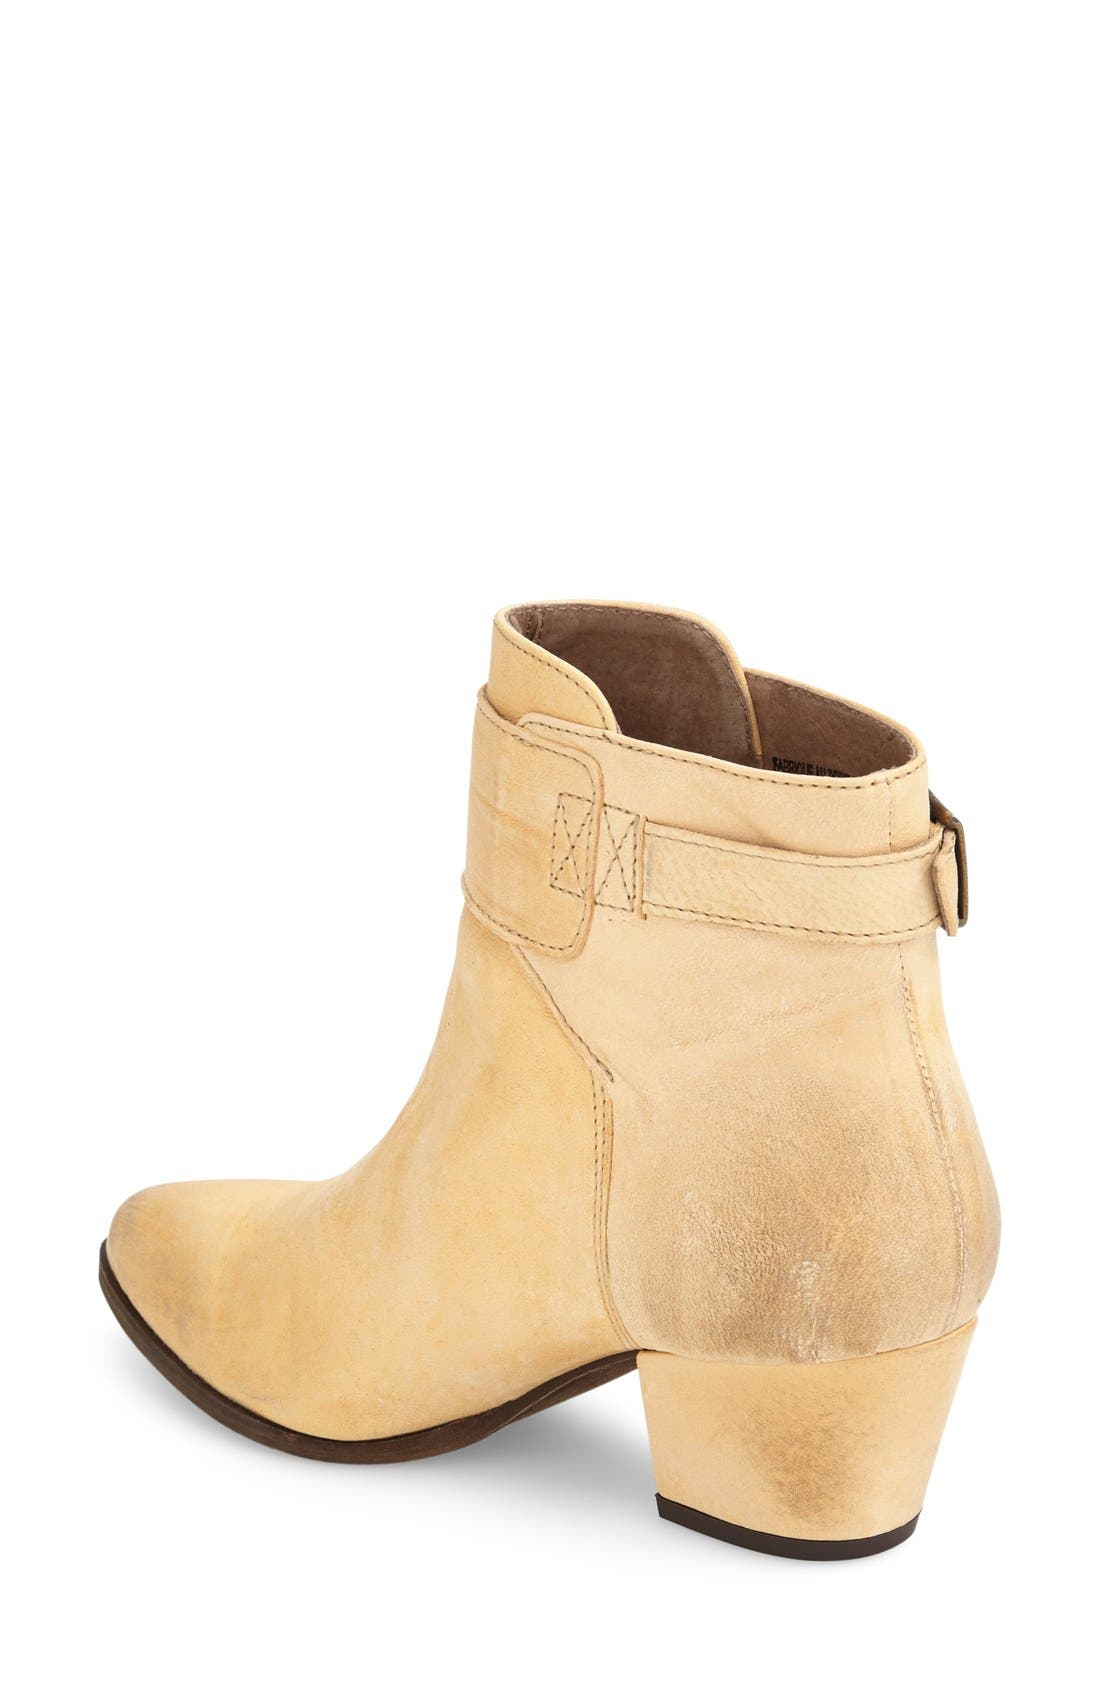 Alternate Image 2  - Free People 'Belleville' Ankle Bootie (Women)